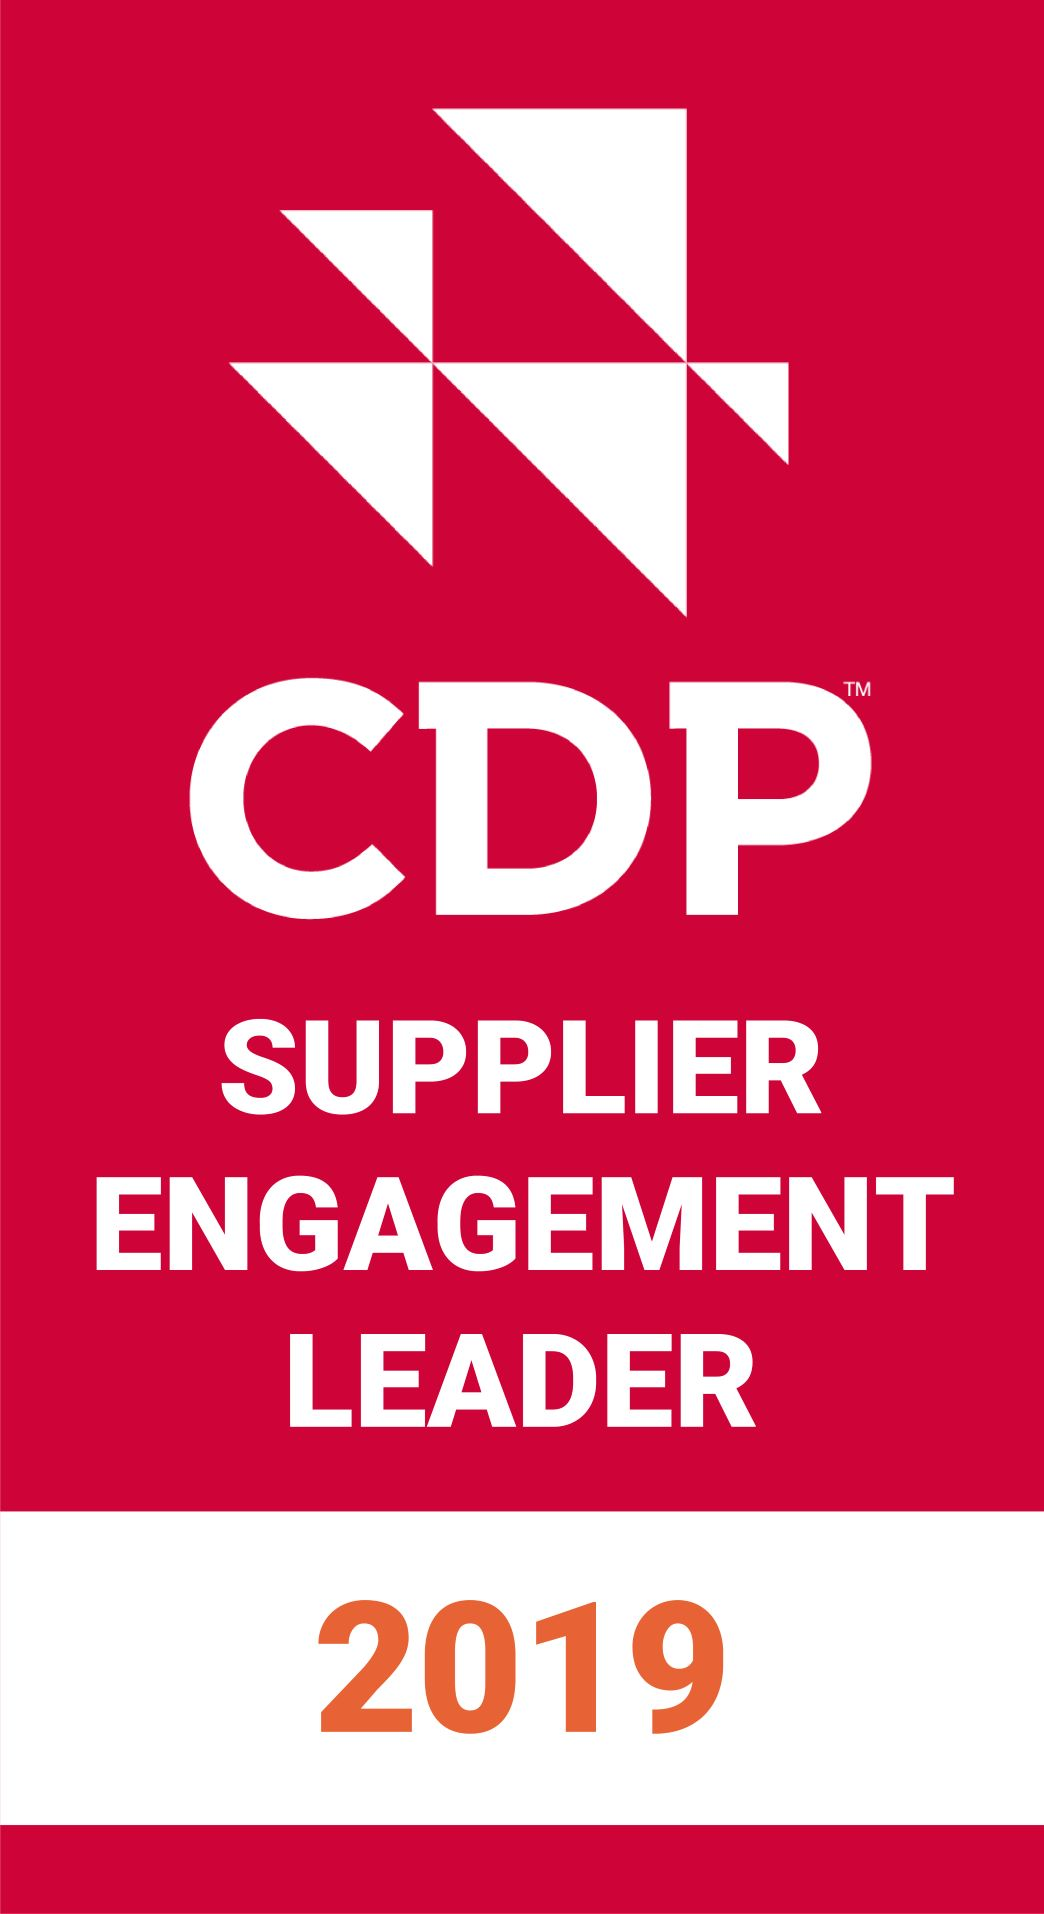 CDP Supplier engagement leader